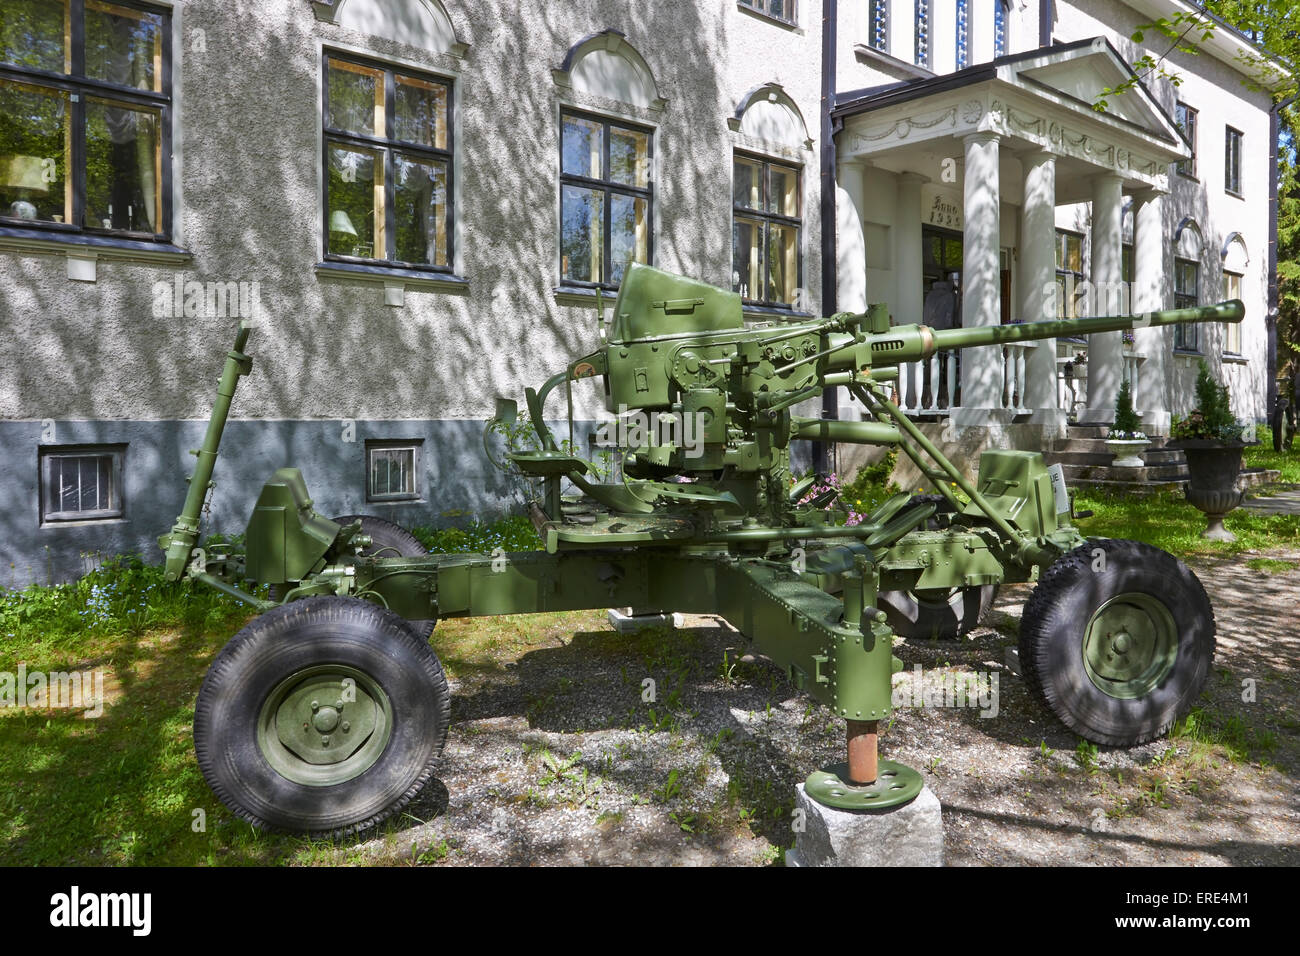 Bofors 40 mm gun on display, Imatra Finland - Stock Image